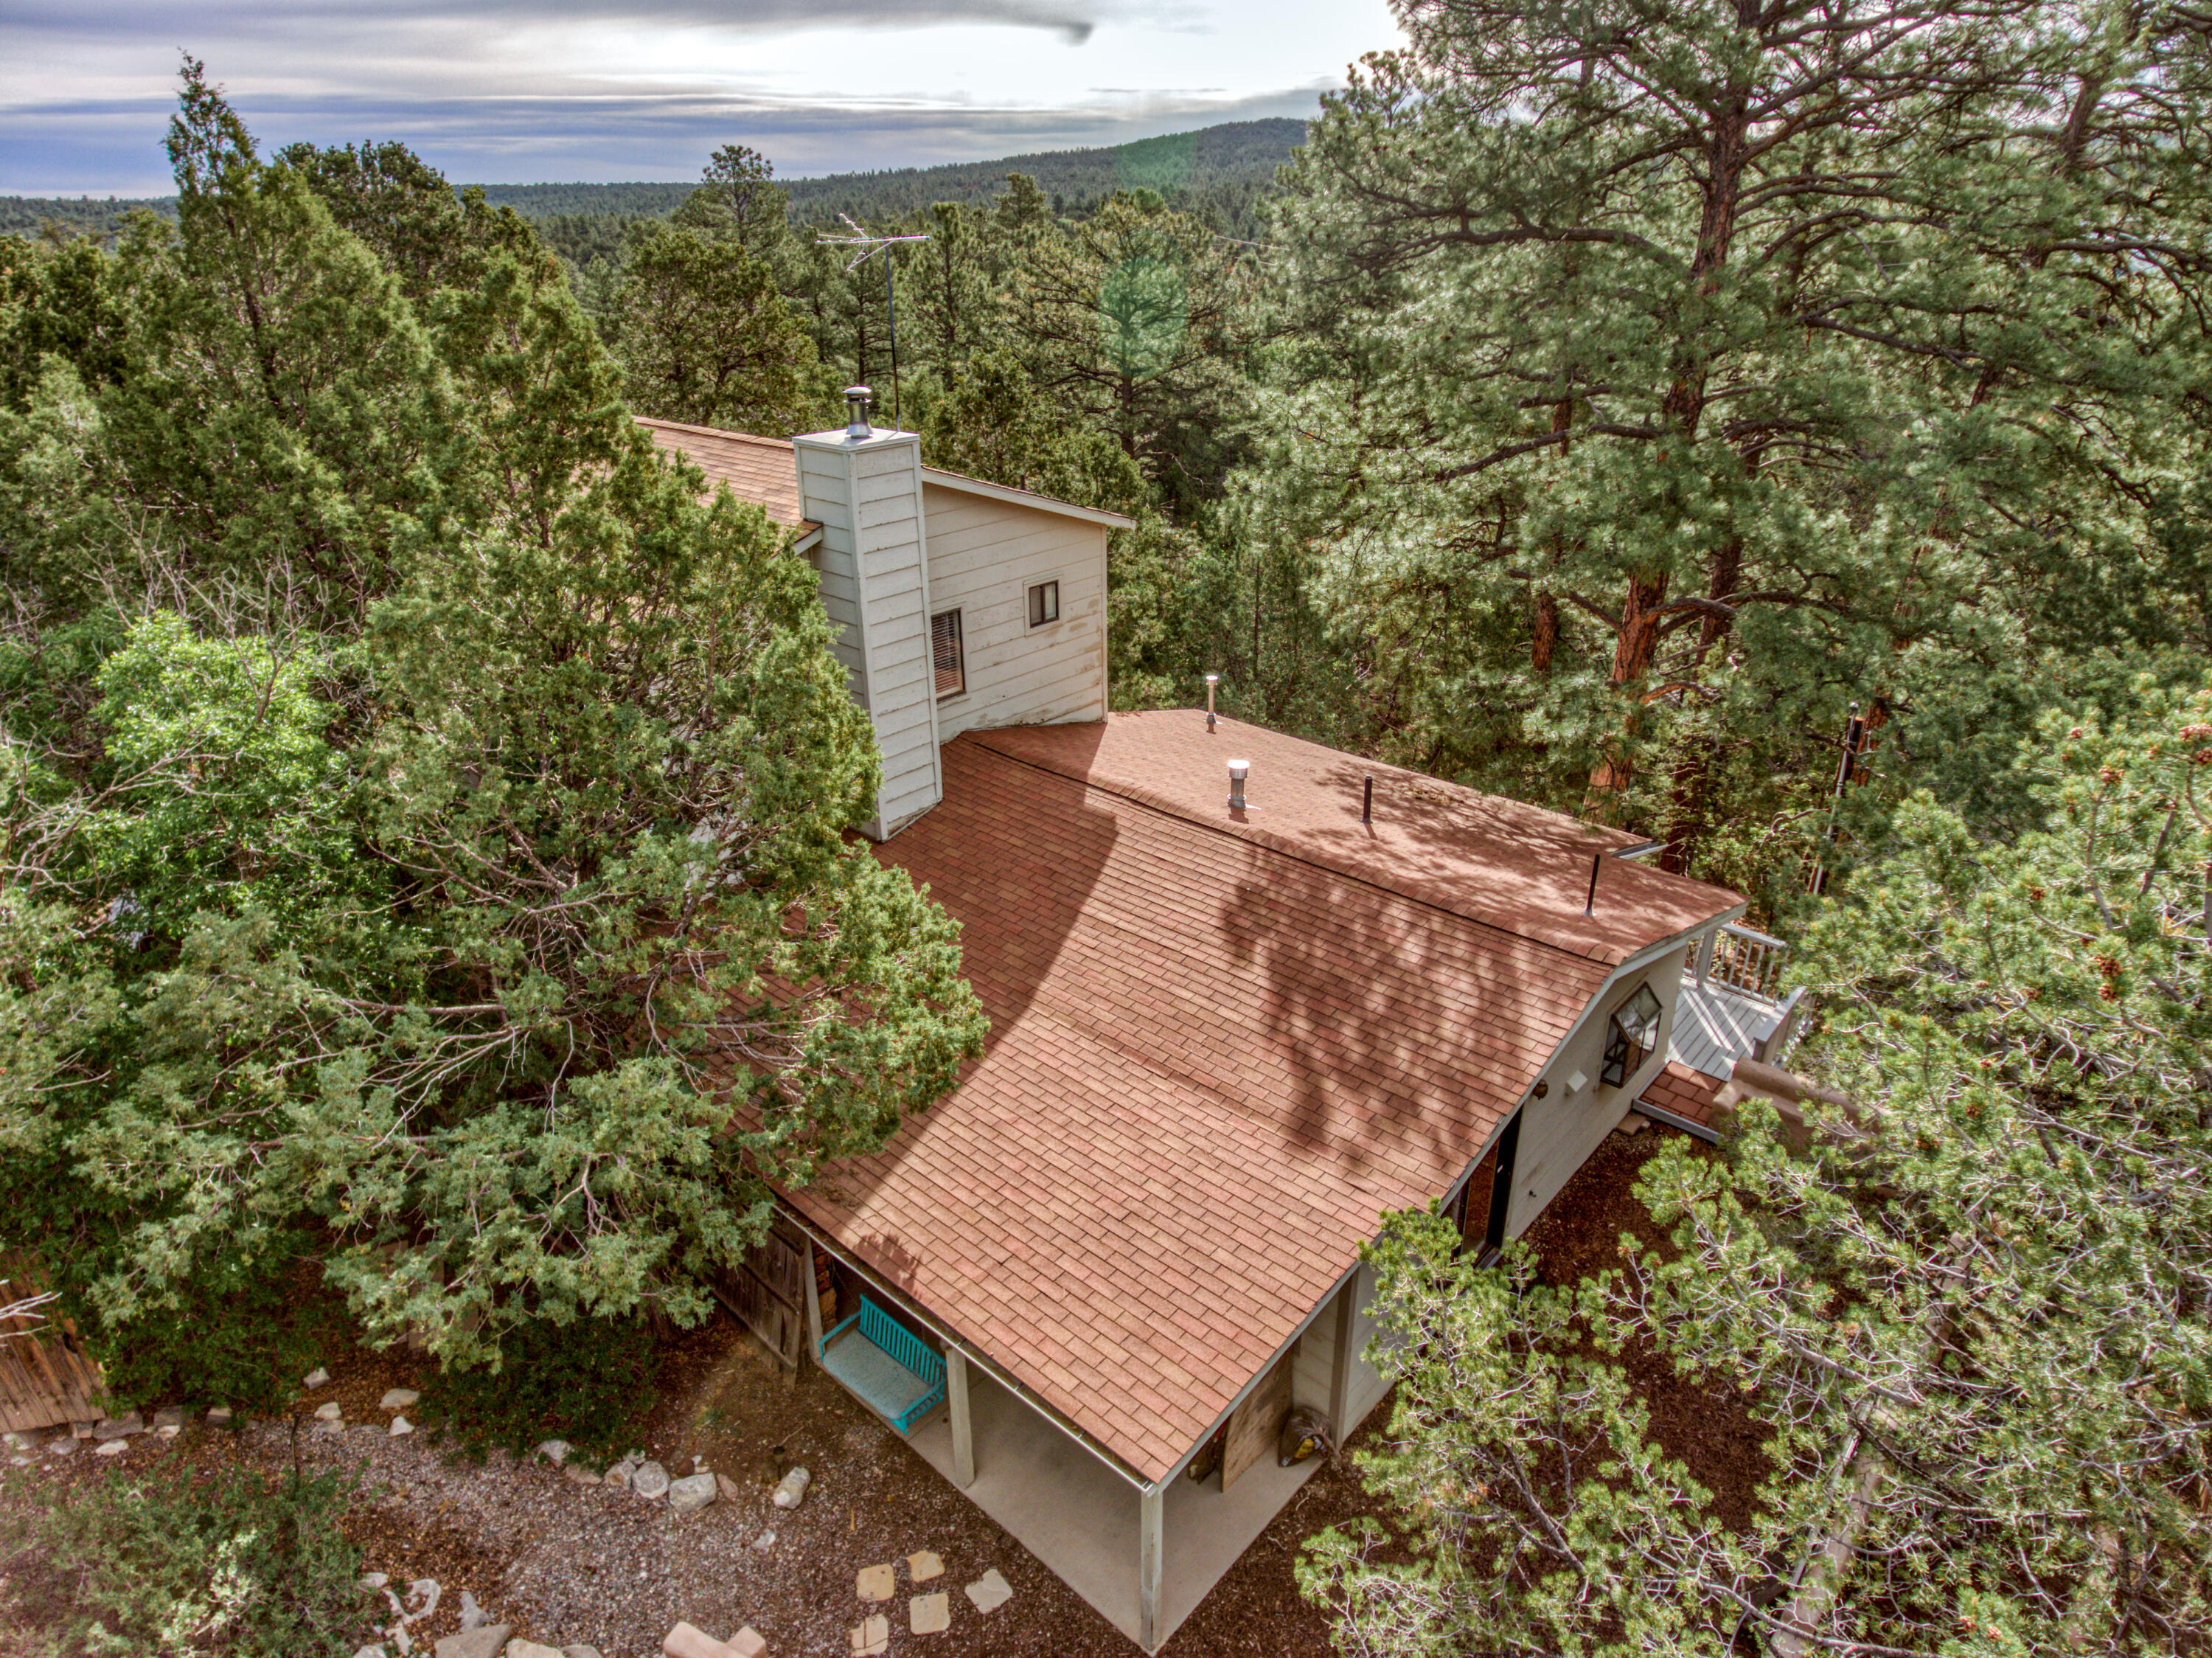 Welcome to the Ramblewood Subdivision in the East Mountain area! What a great place to call home and get away from city life. The property is beautiful with a variety of trees including tall pines. Enjoy sitting on your swing in your private courtyard. Theres plenty of room in the house which includes 3 bedrooms possible 4 and 3 baths. The appliances stay with the home. This home has an abundance of storage and recent improvements. There is a nice 2 car detached garage with 220 power & 30 amp service for an RV. Don't let this home get away it won't last long on the market.